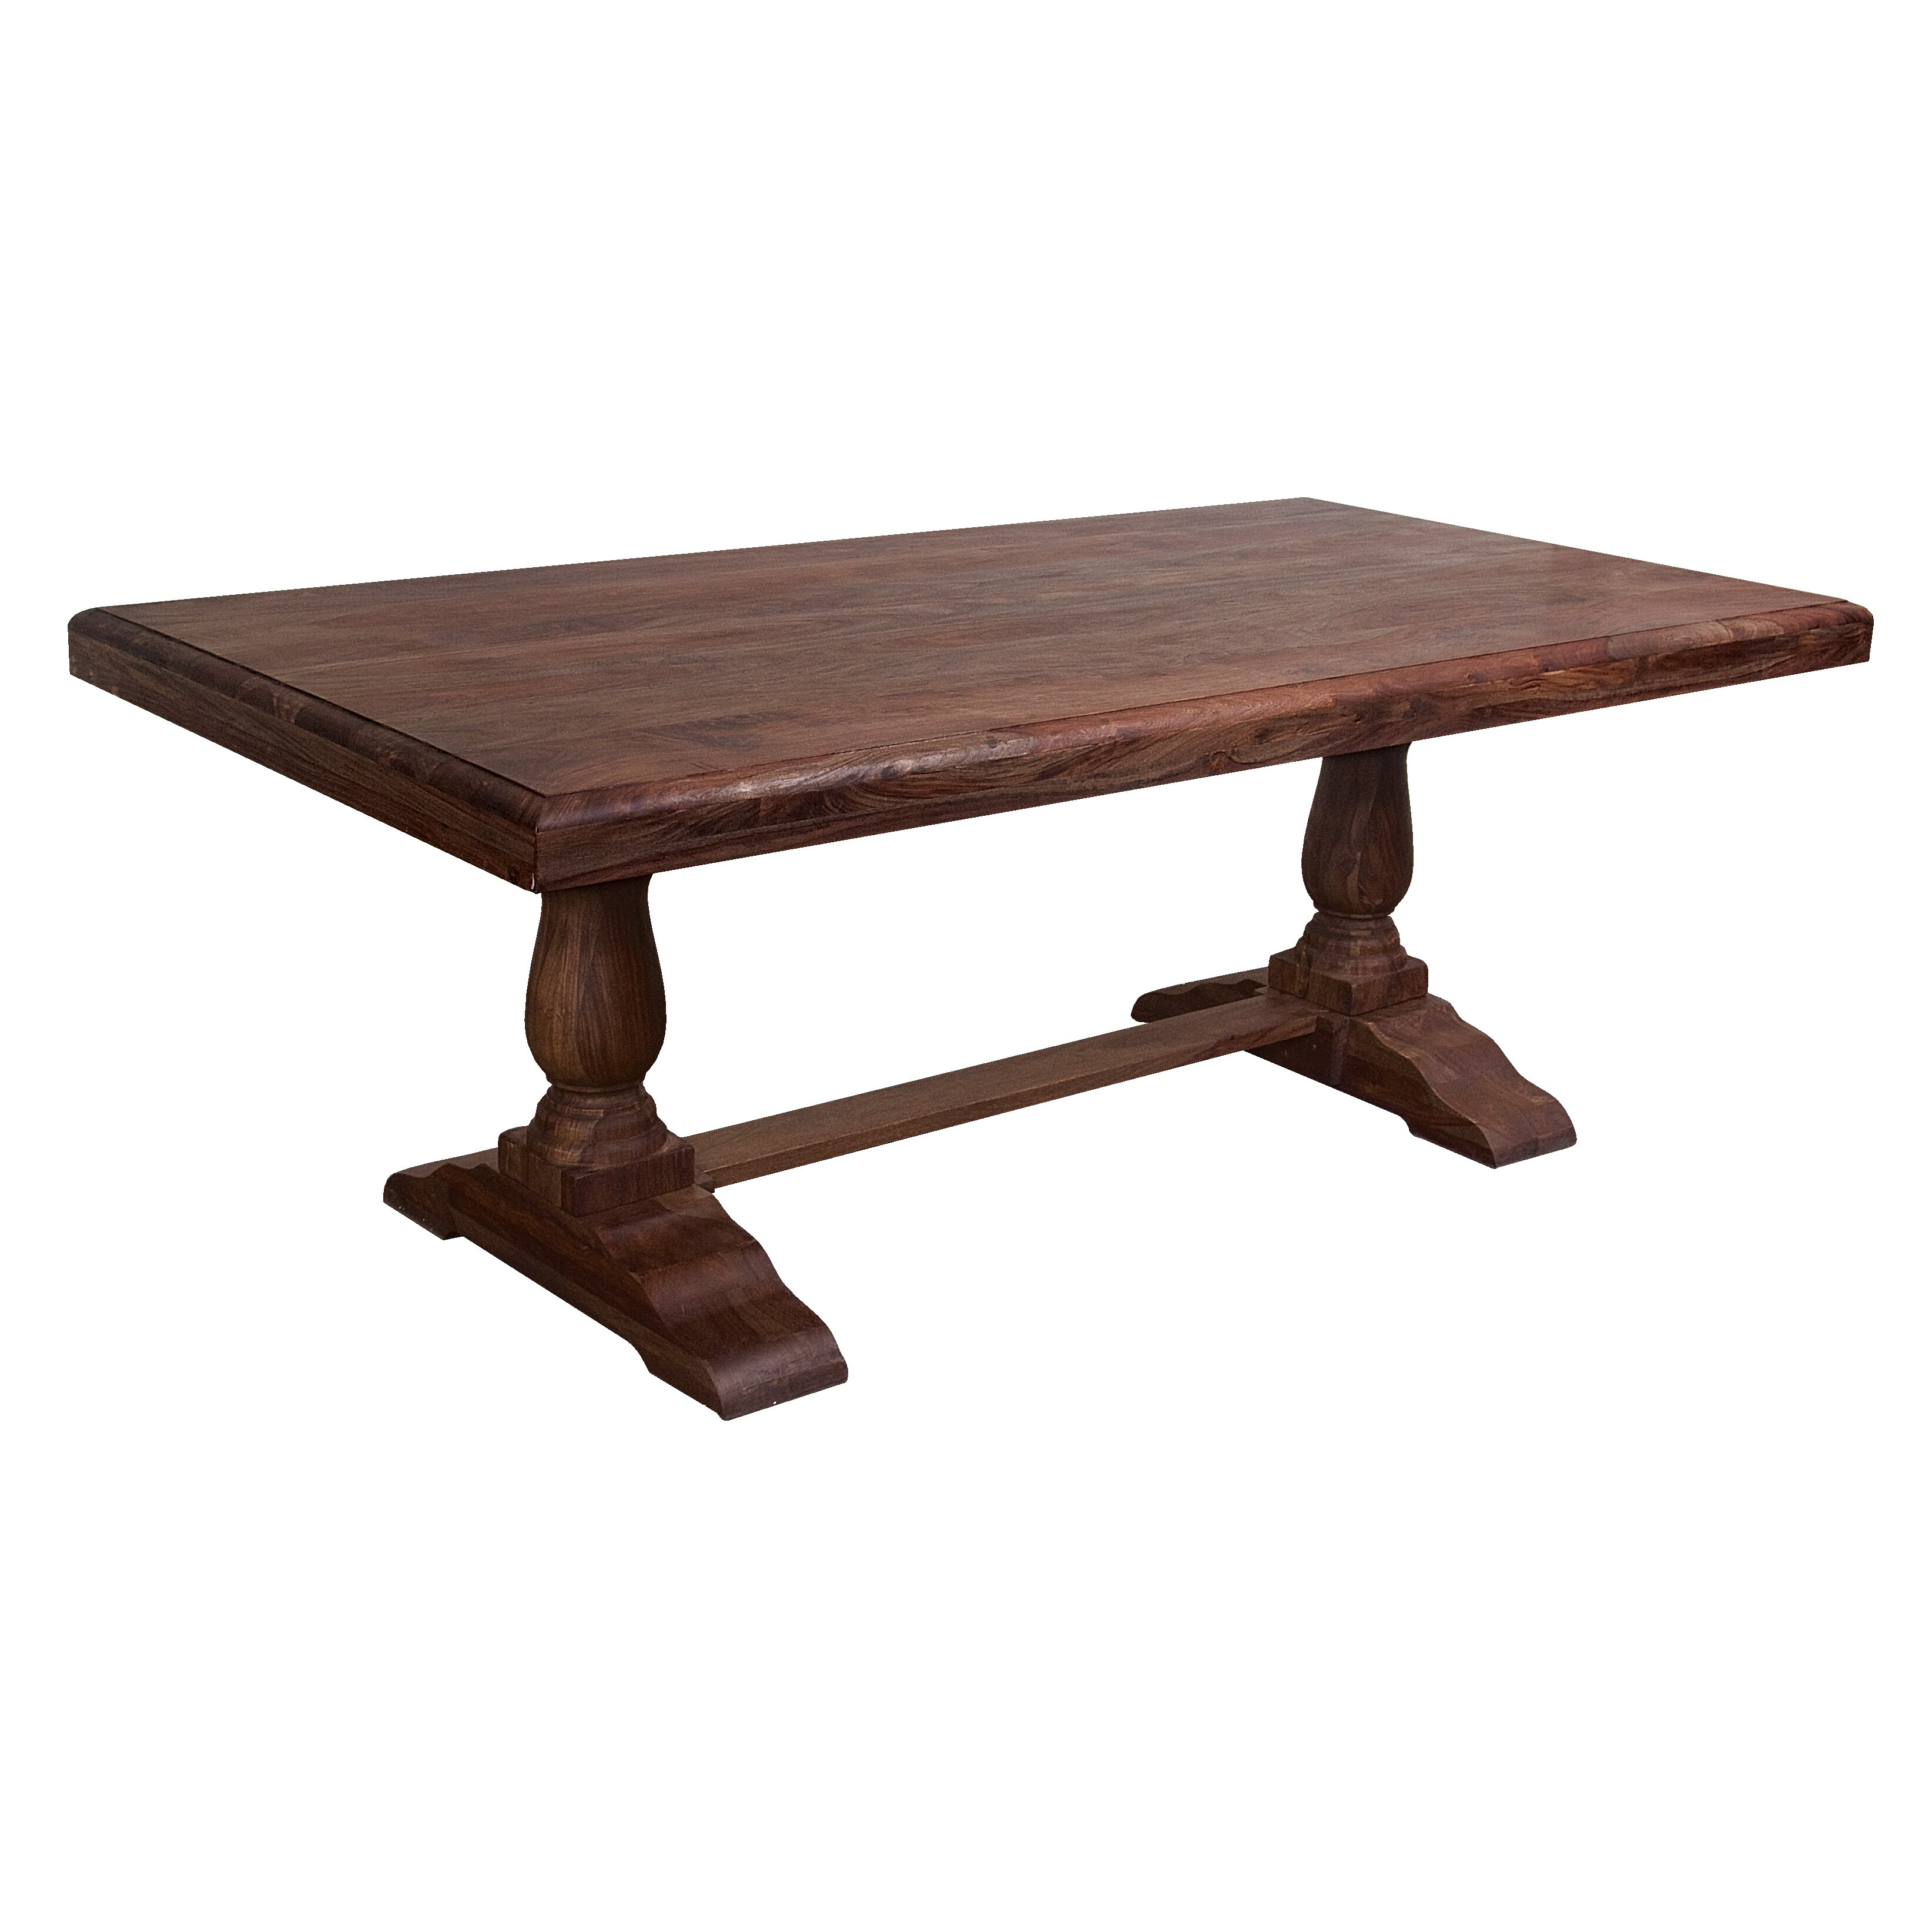 Coast to coast imports dining table reviews wayfair for Wayfair dining table